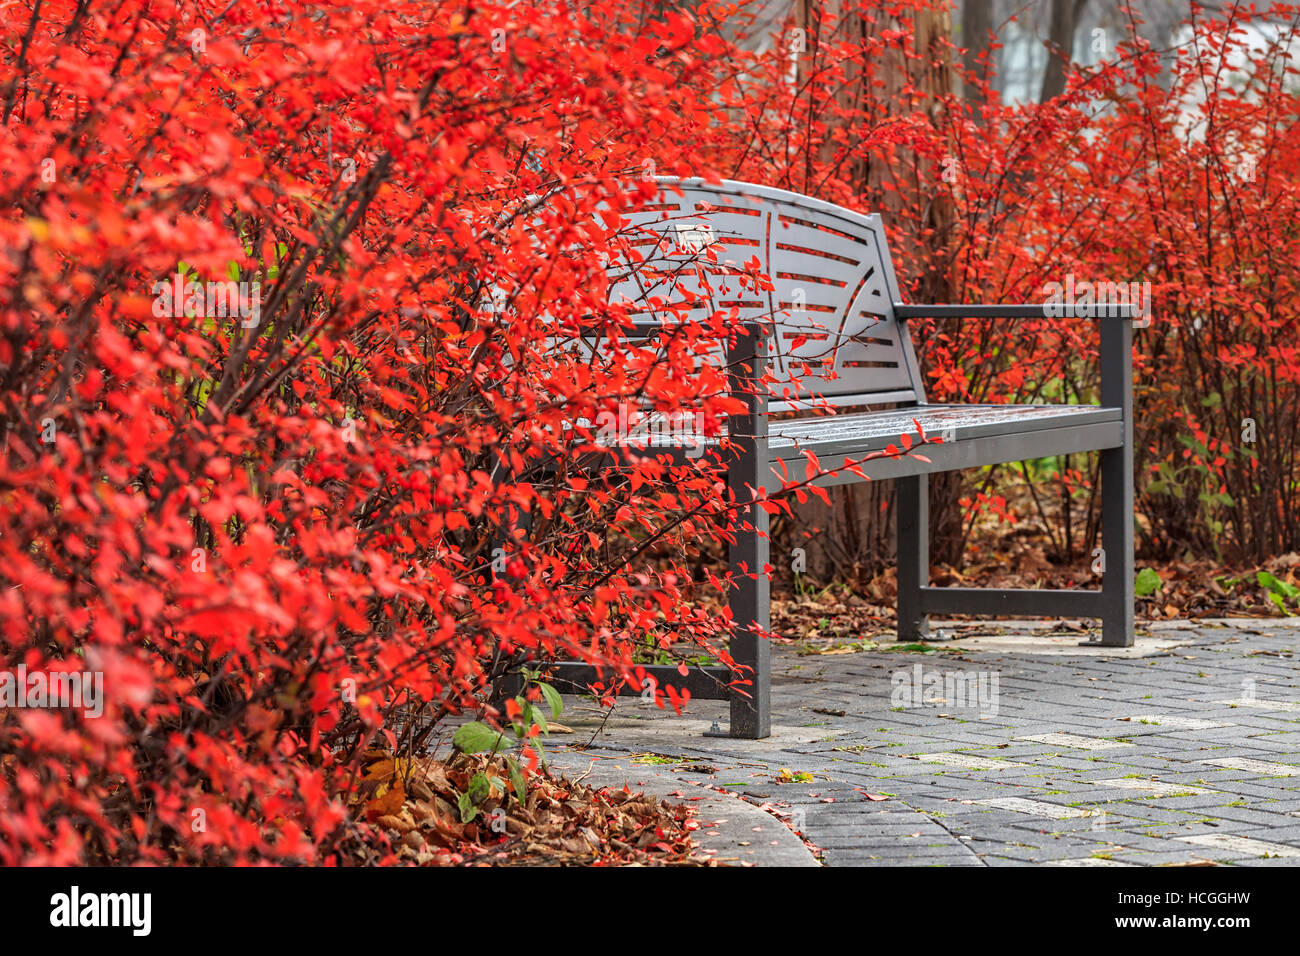 Crimson colored leaves of Burning Bush with park bench, Assiniboine Park, Winnipeg, Manitoba, Canada. - Stock Image